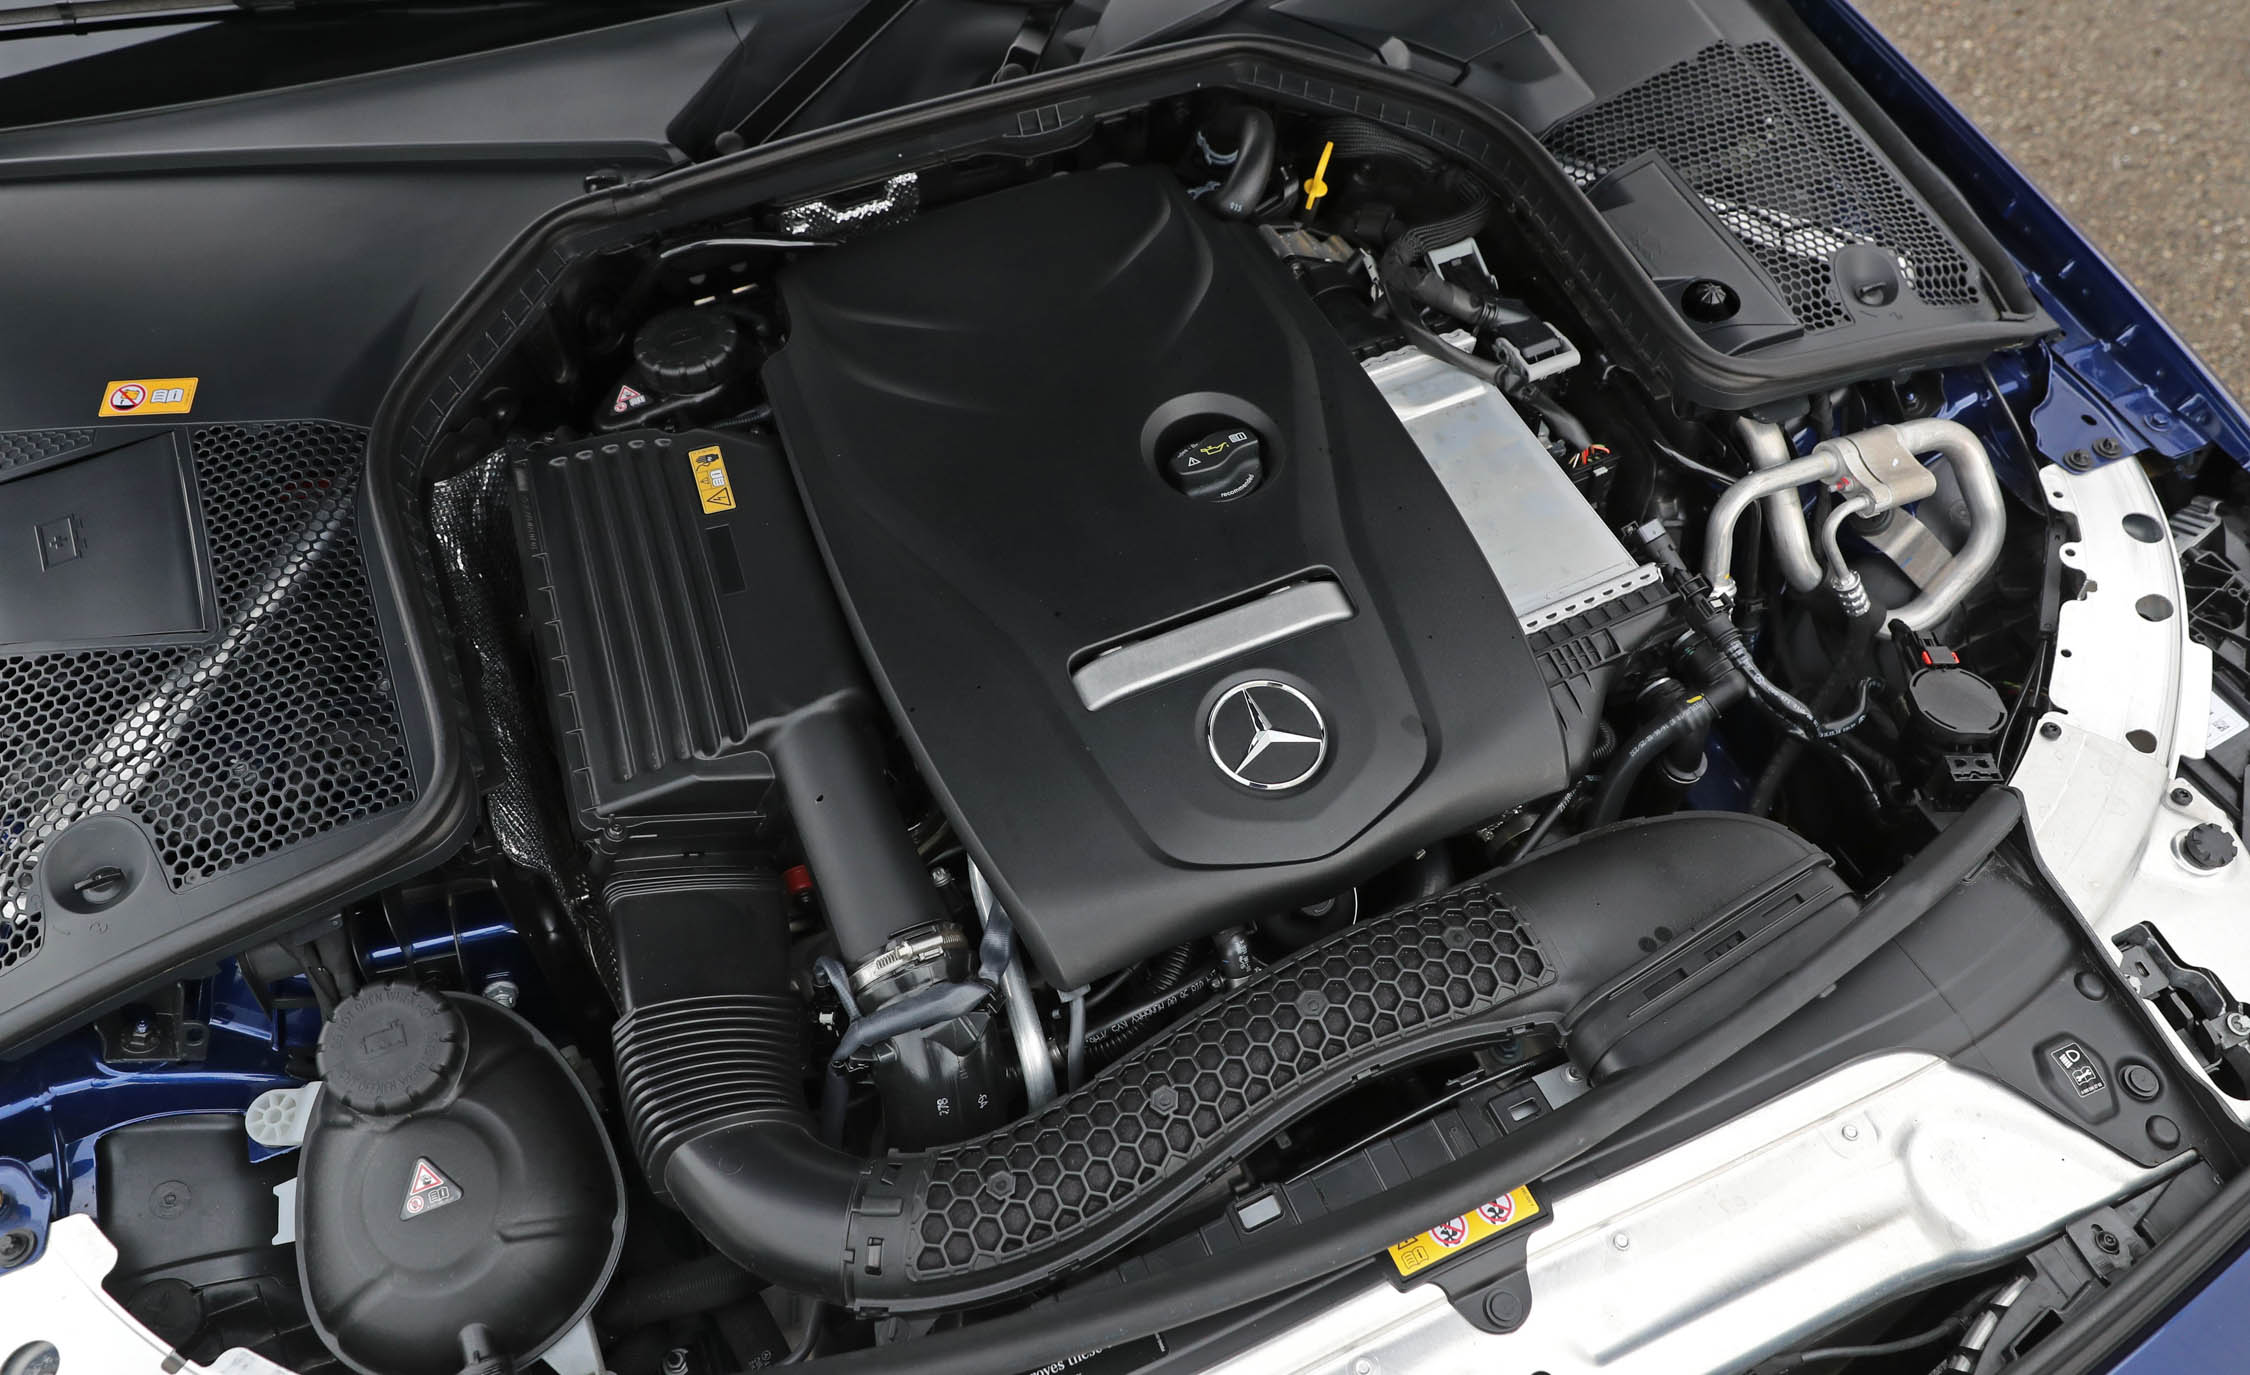 2017 Mercedes Benz C300 4MATIC Coupe View Engine (Photo 6 of 44)